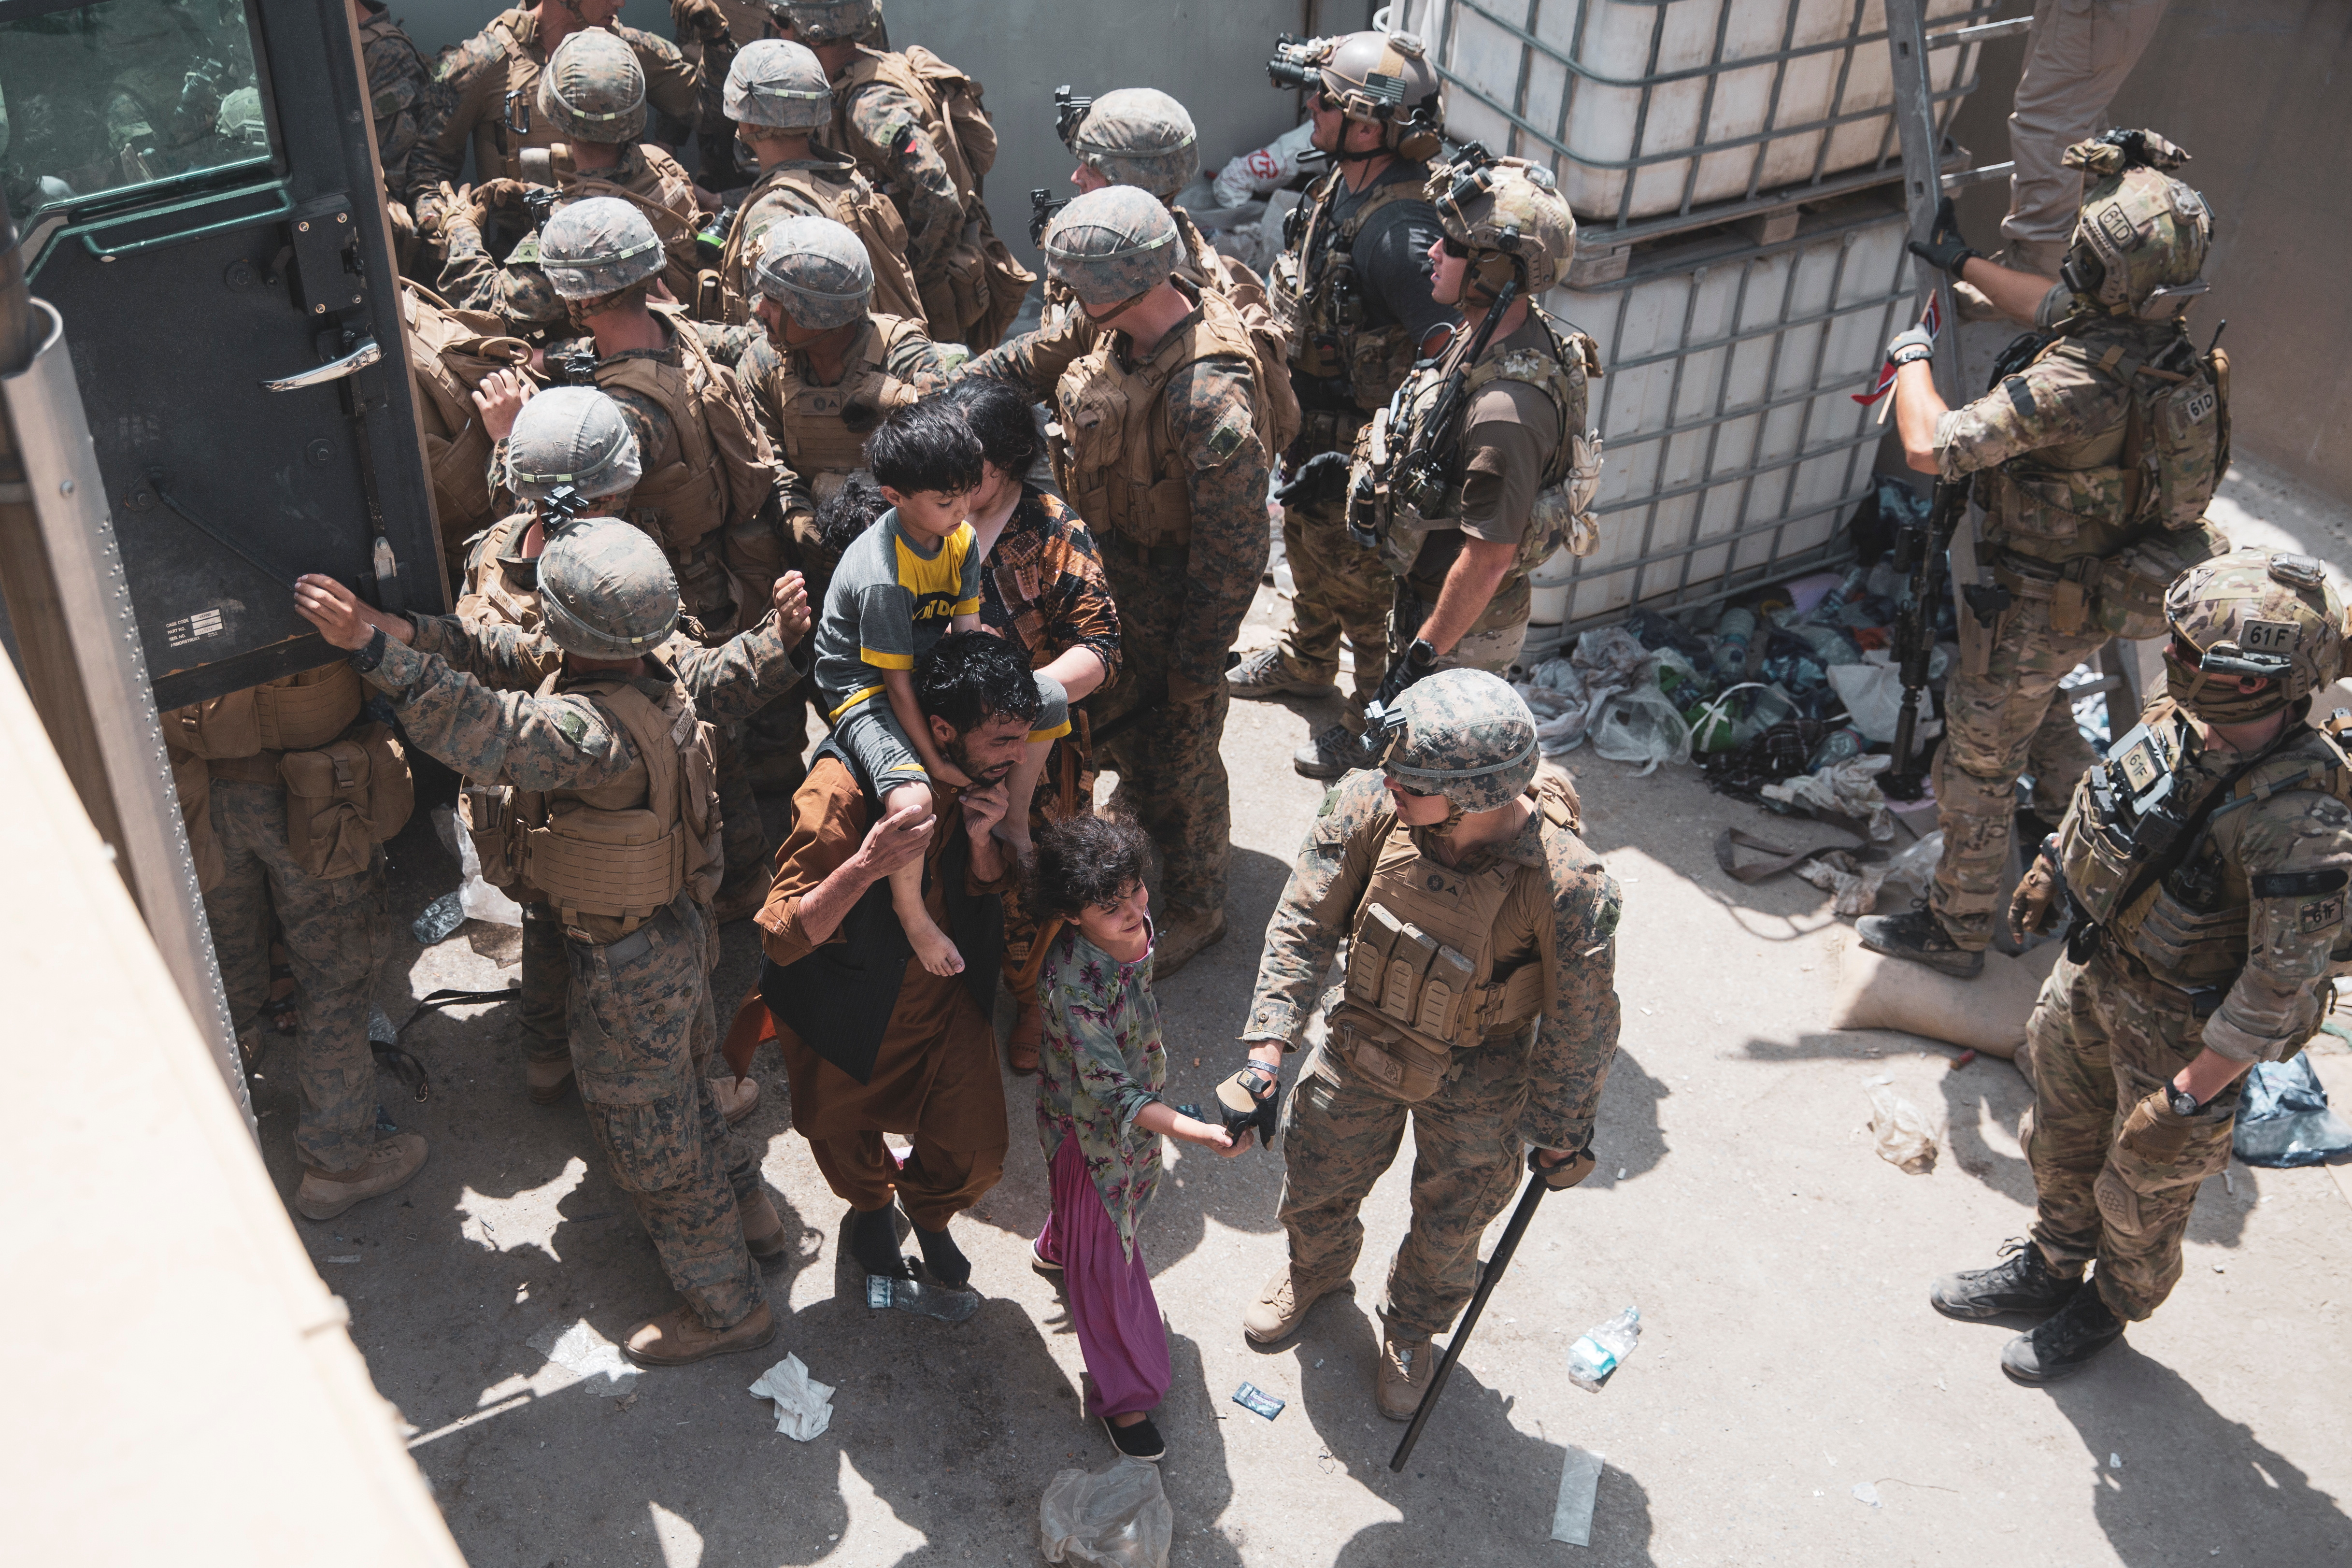 U.S. Marines and Norwegian coalition forces assist with security at an Evacuation Control Checkpoint ensuring evacuees are processed safely during an evacuation at Hamid Karzai International Airport, Kabul, Afghanistan, August 20, 2021.   U.S. Marine Corps/Staff Sgt. Victor Mancilla